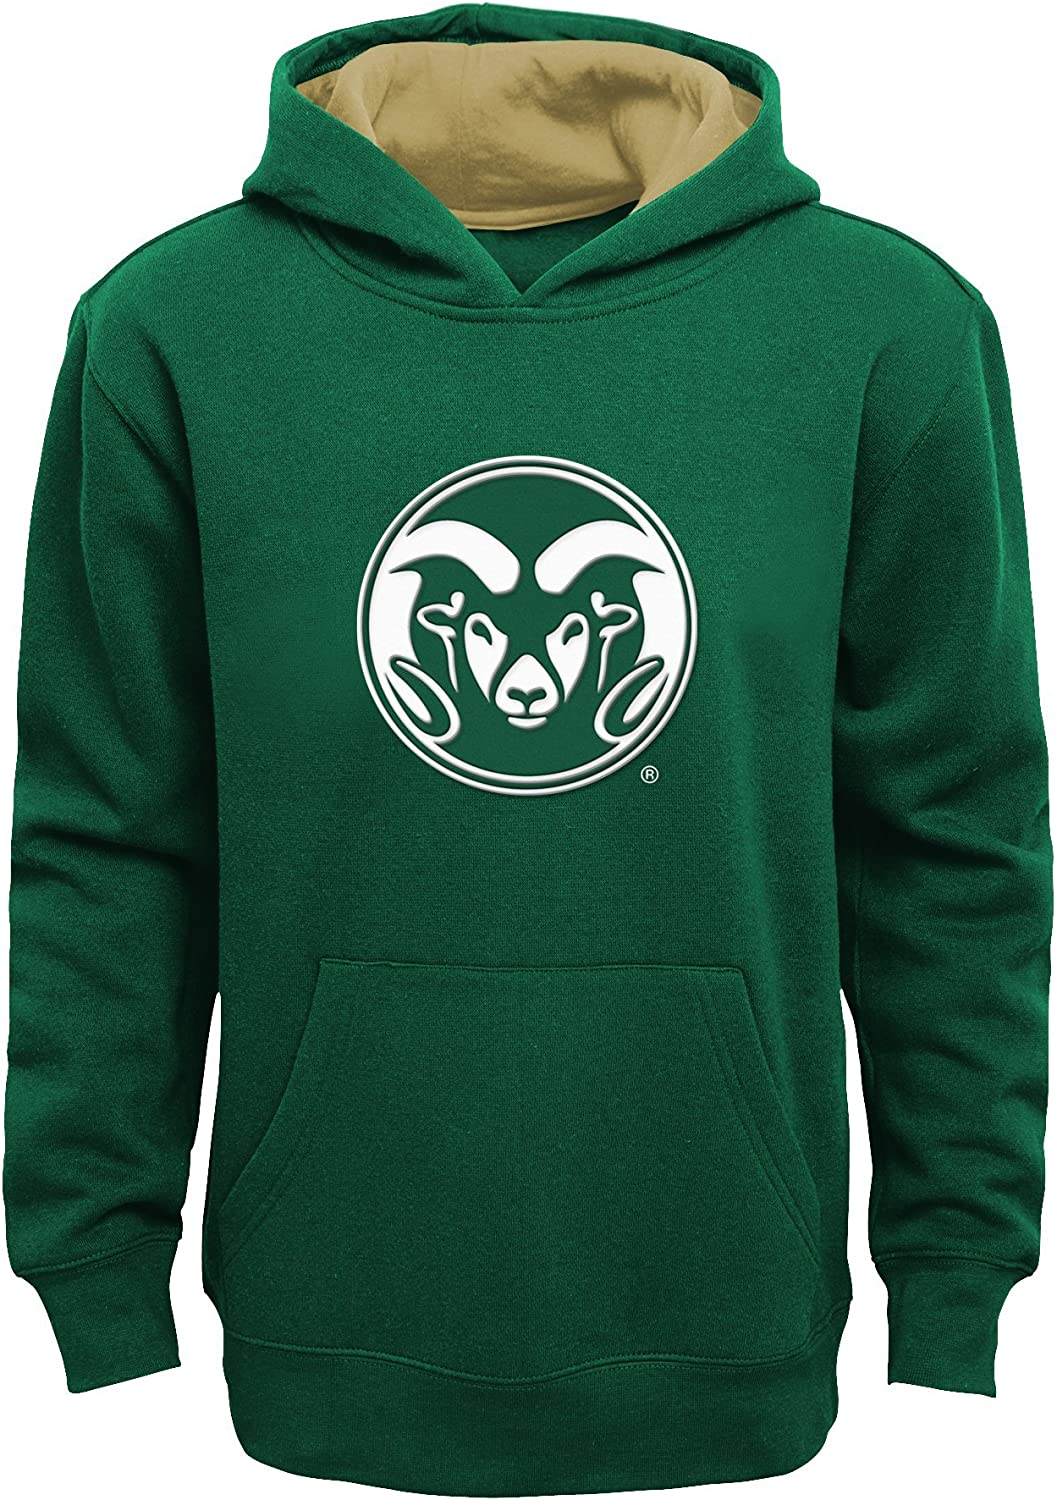 Youth Medium 10-12 NCAA by Outerstuff NCAA Colorado State Rams Kids /& Youth Boys Prime Fleece Pullover Hoodie Dark Green